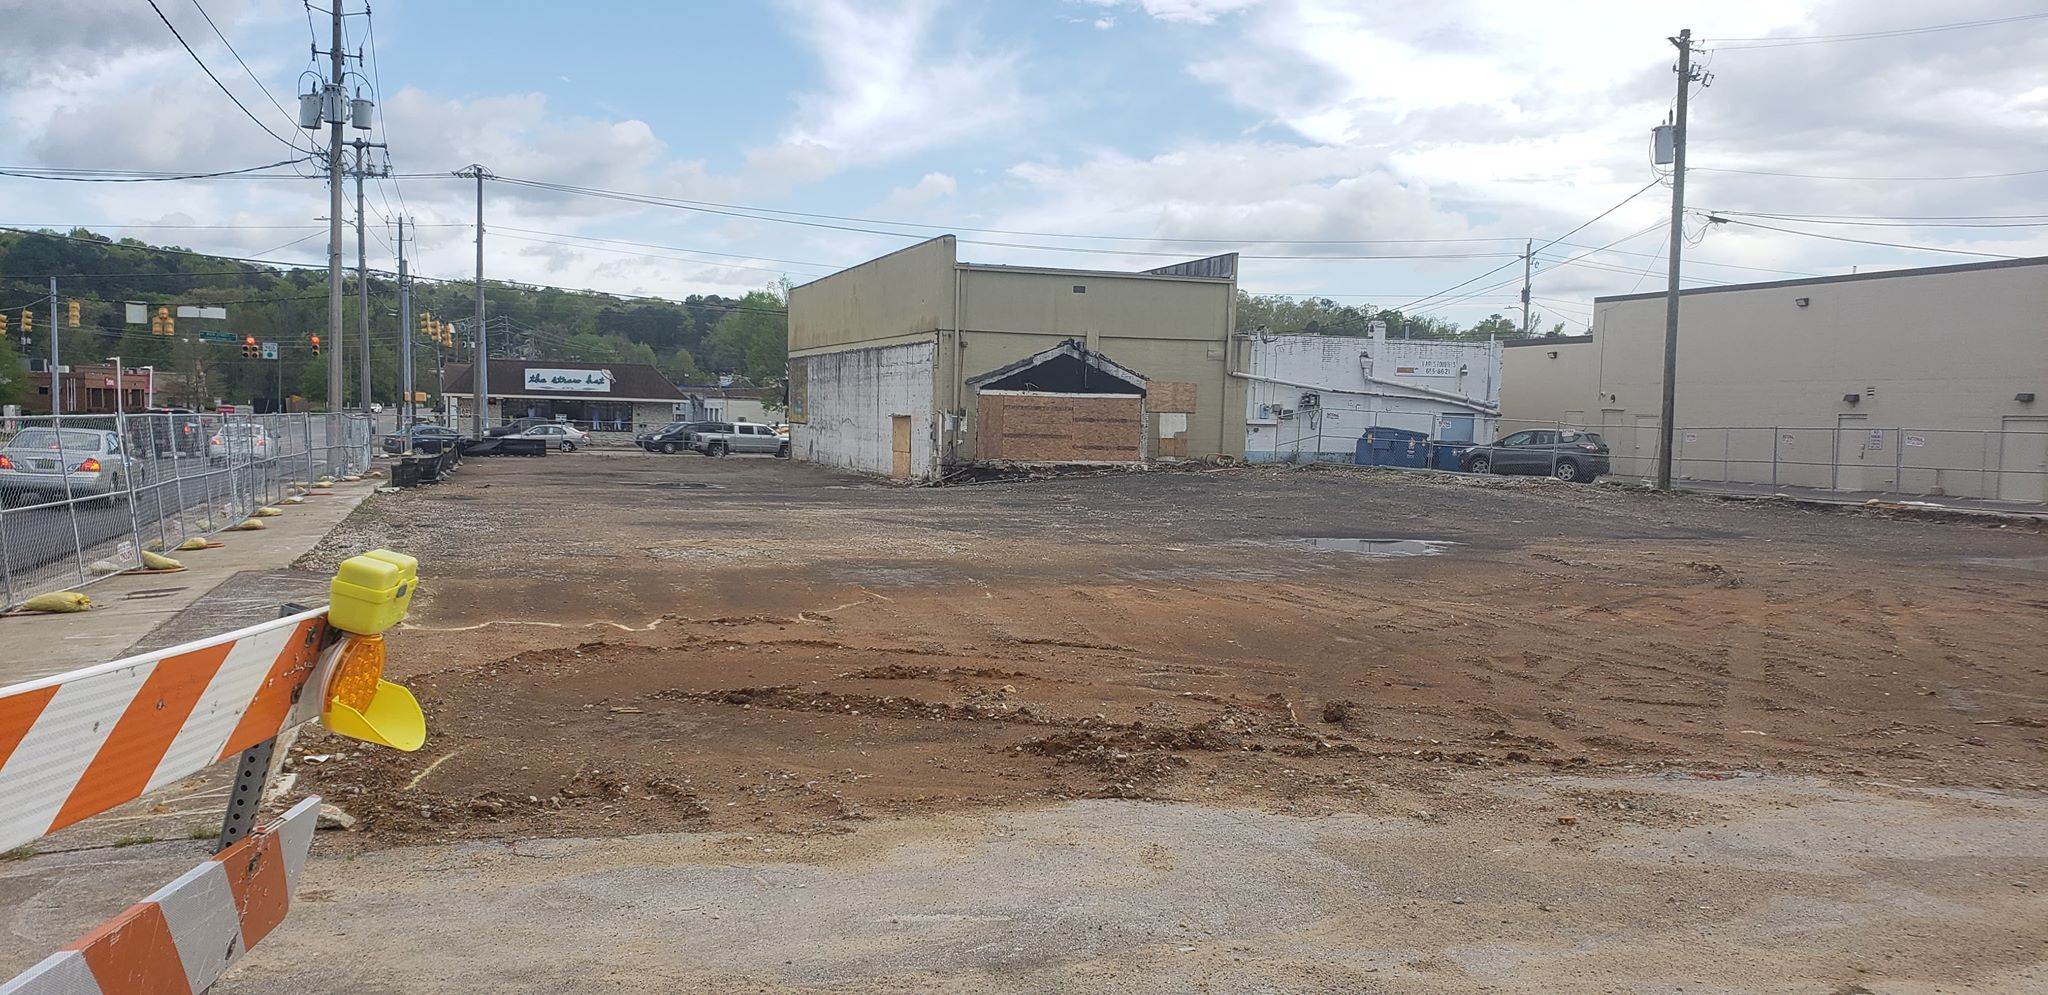 Downtown Trussville redevelopment on schedule